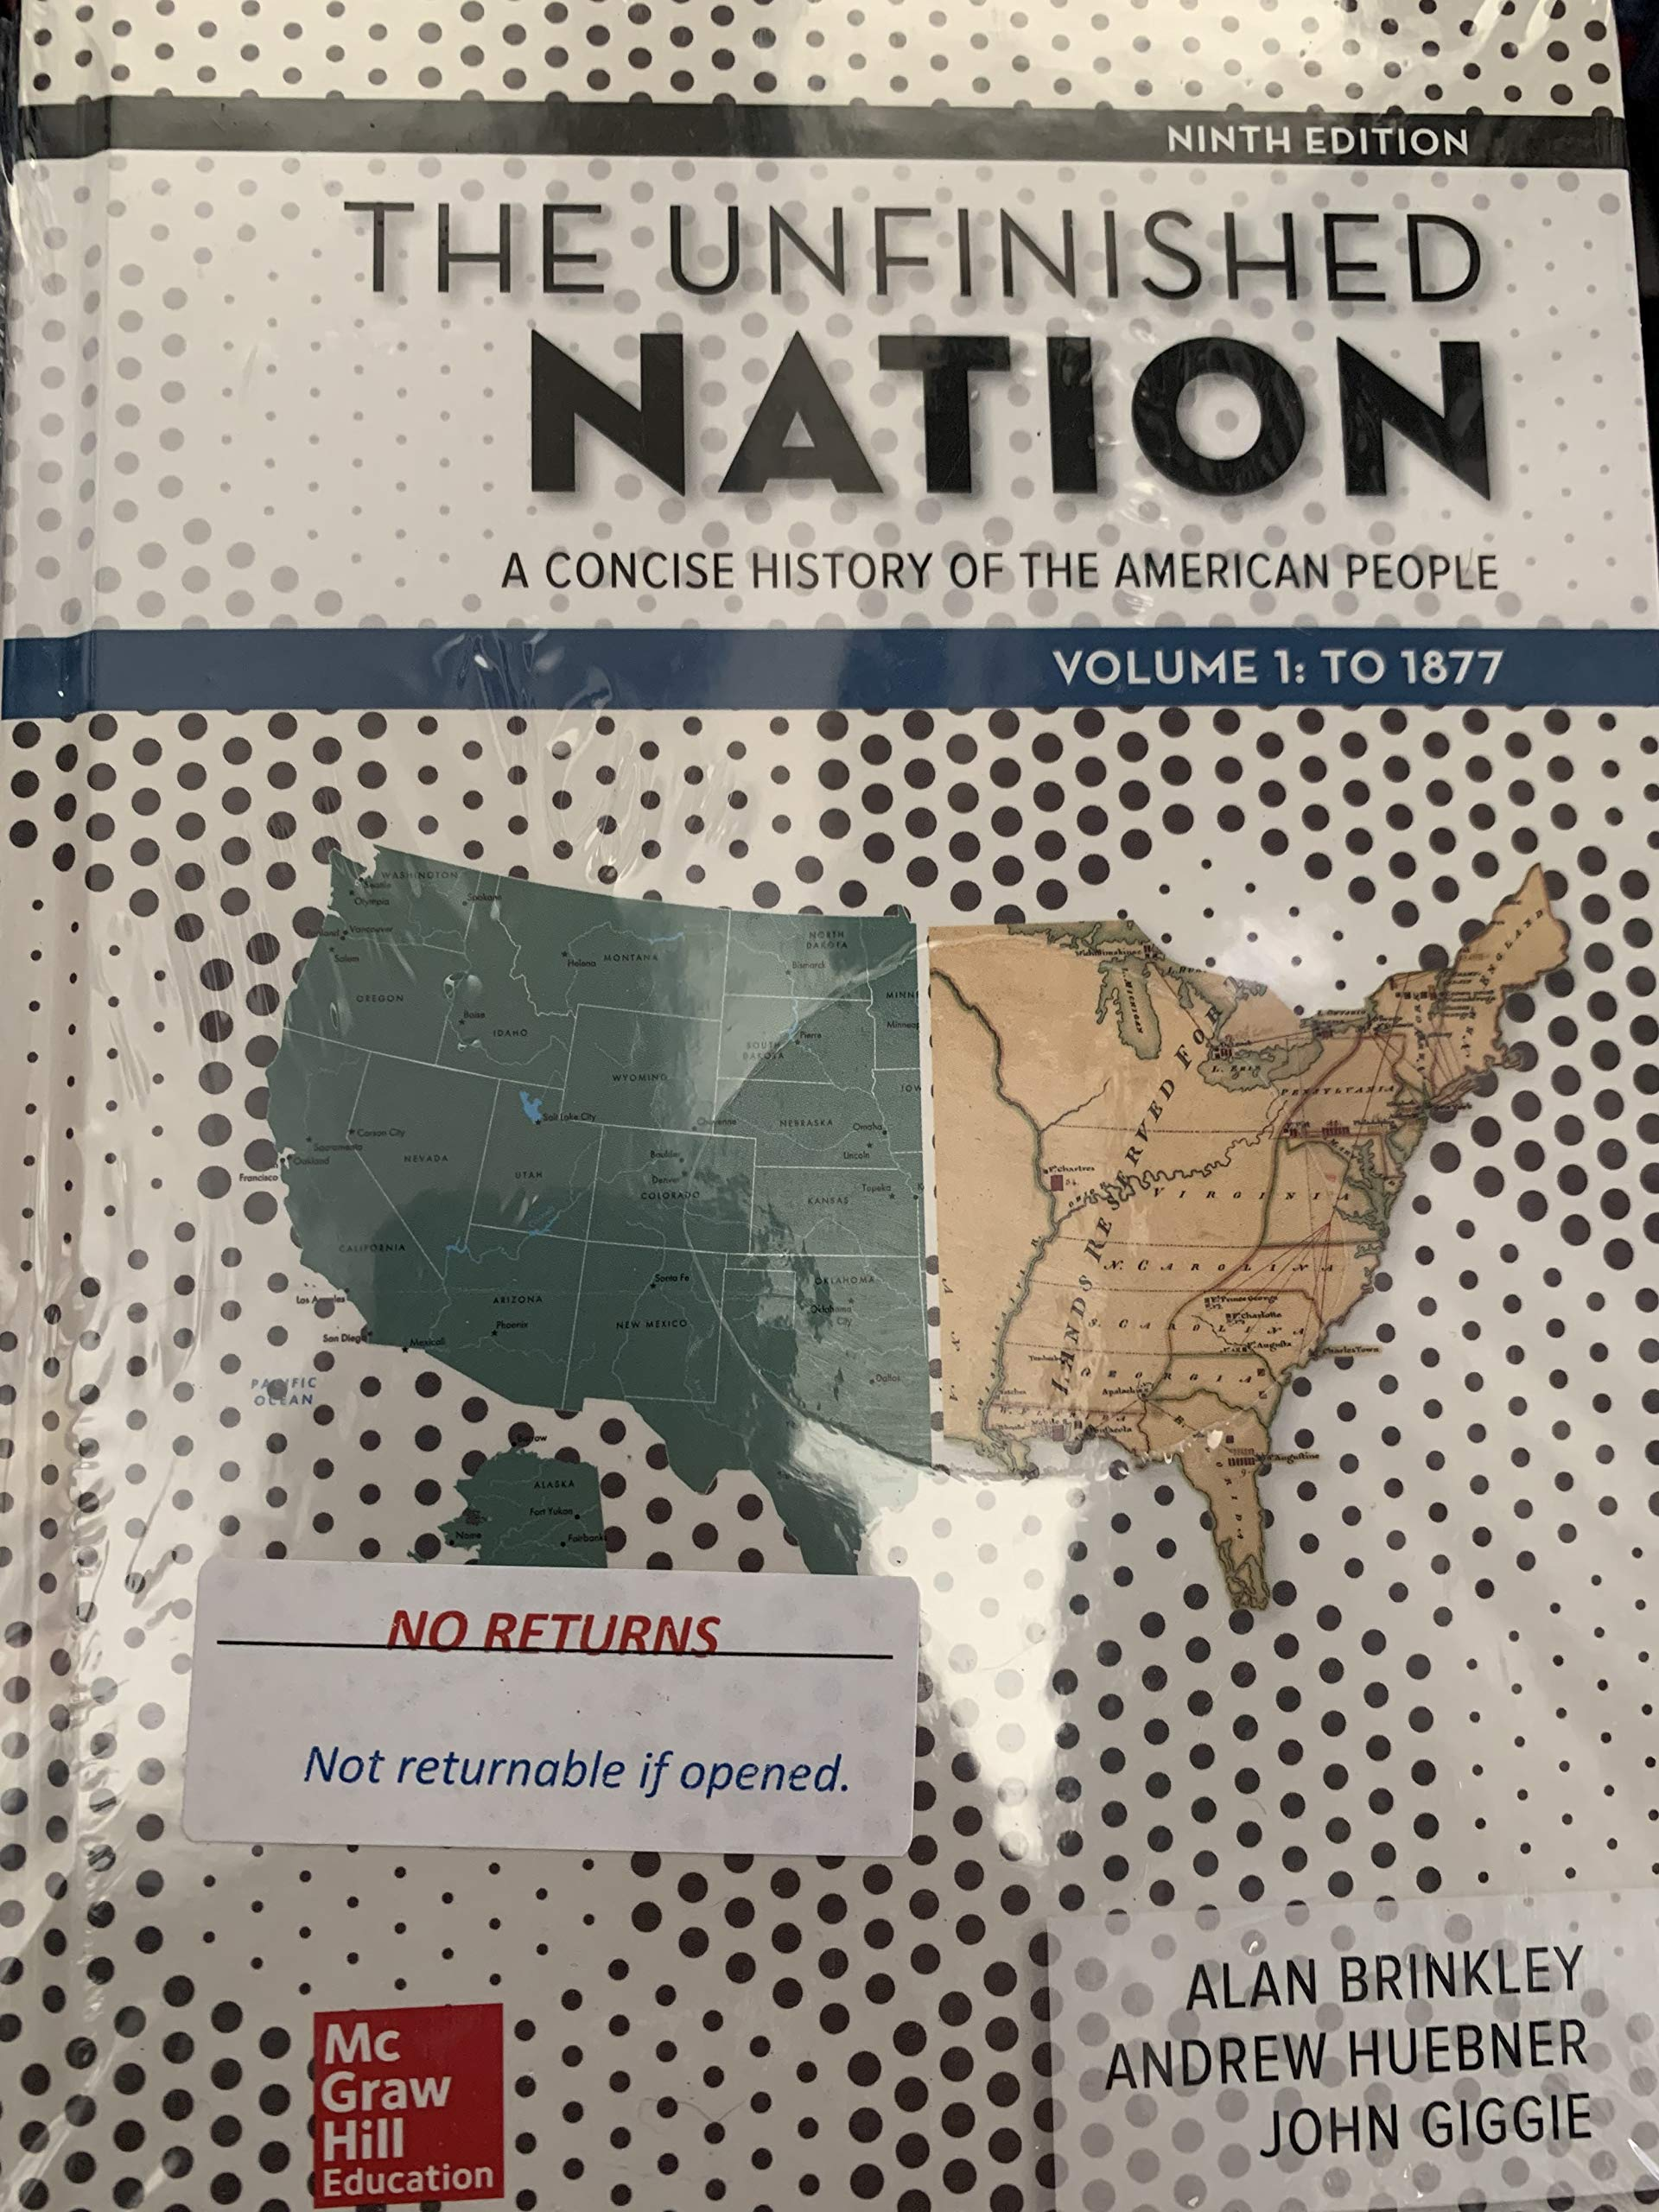 The Unfinished Nation: A Concise History of the American People Volume 1 by McGraw-Hill Education